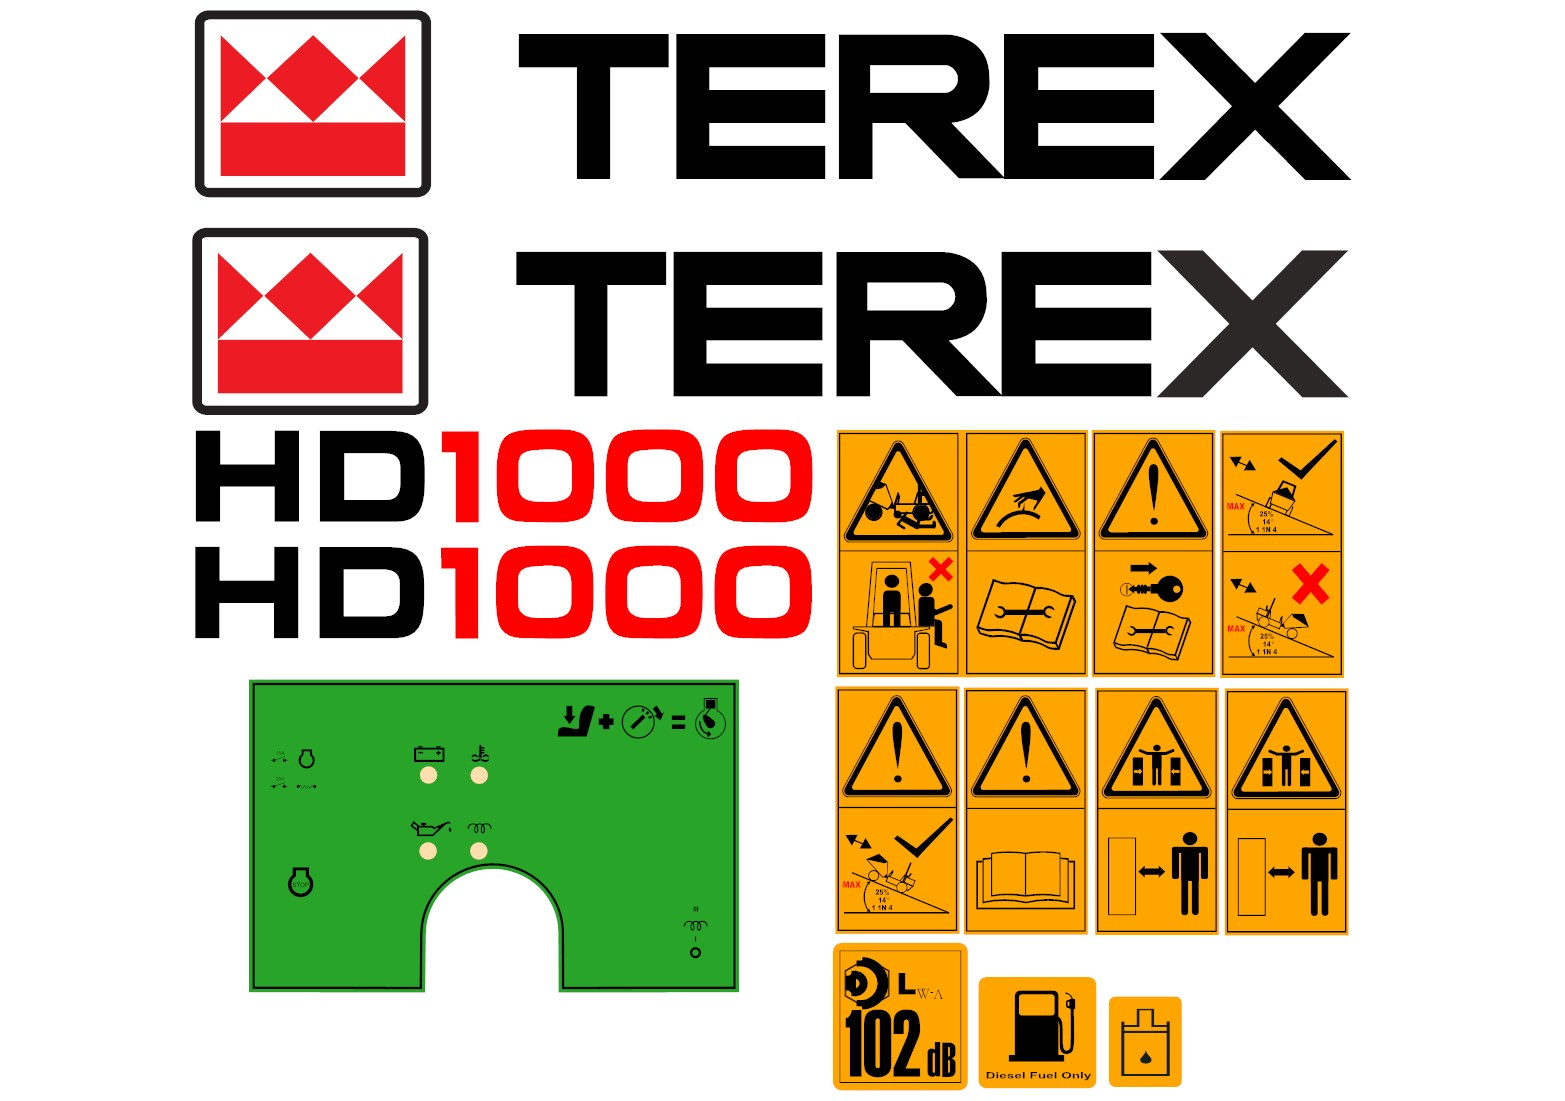 TEREX HD1000 terex hd1000 dumper decal set amc machinery decals terex hd1000 wiring diagram at mifinder.co